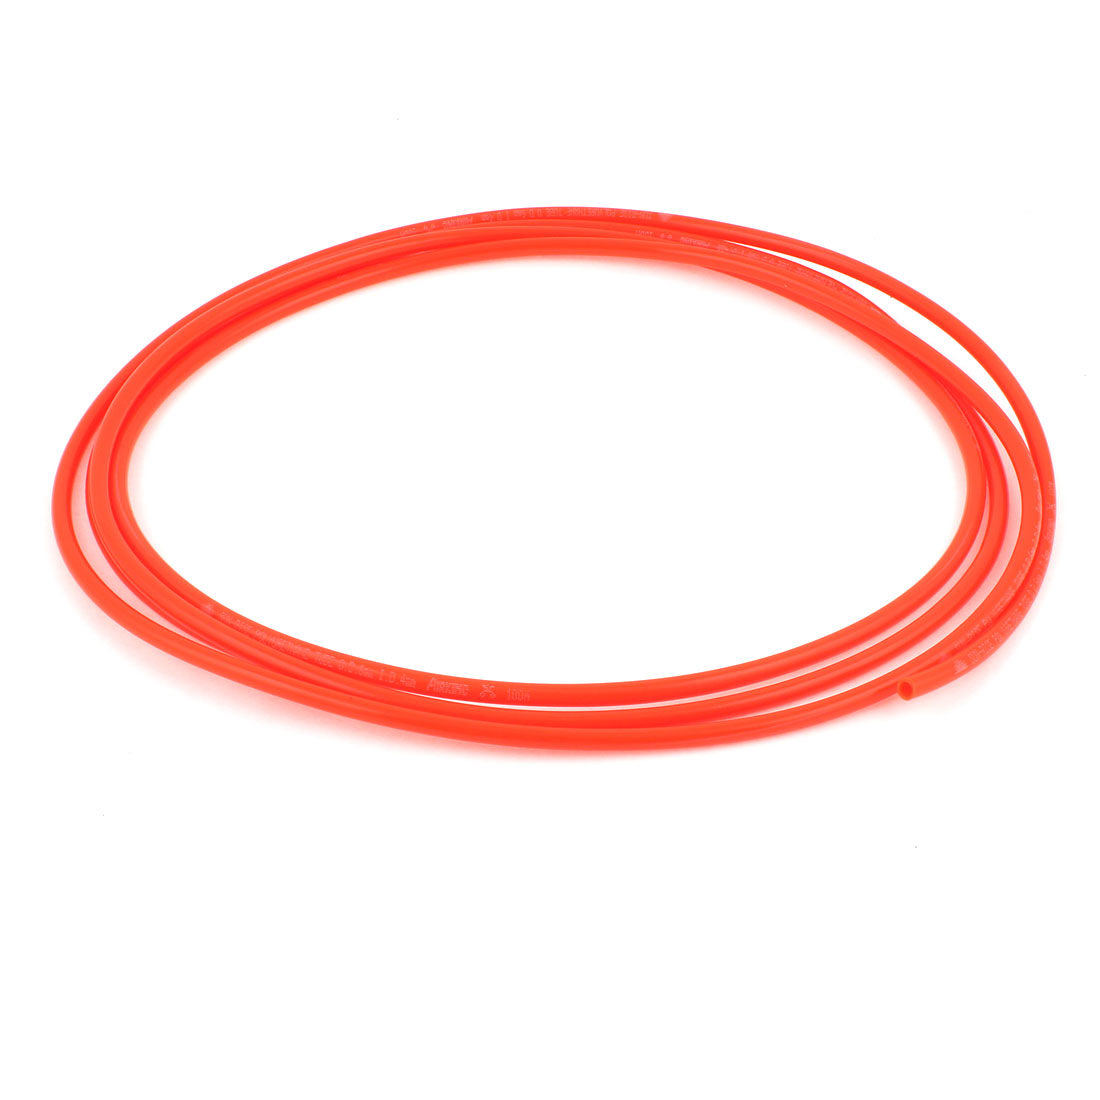 Polyurethane PU Air Compressor Hose Tube 3 Meter 6mm x 4mm Red